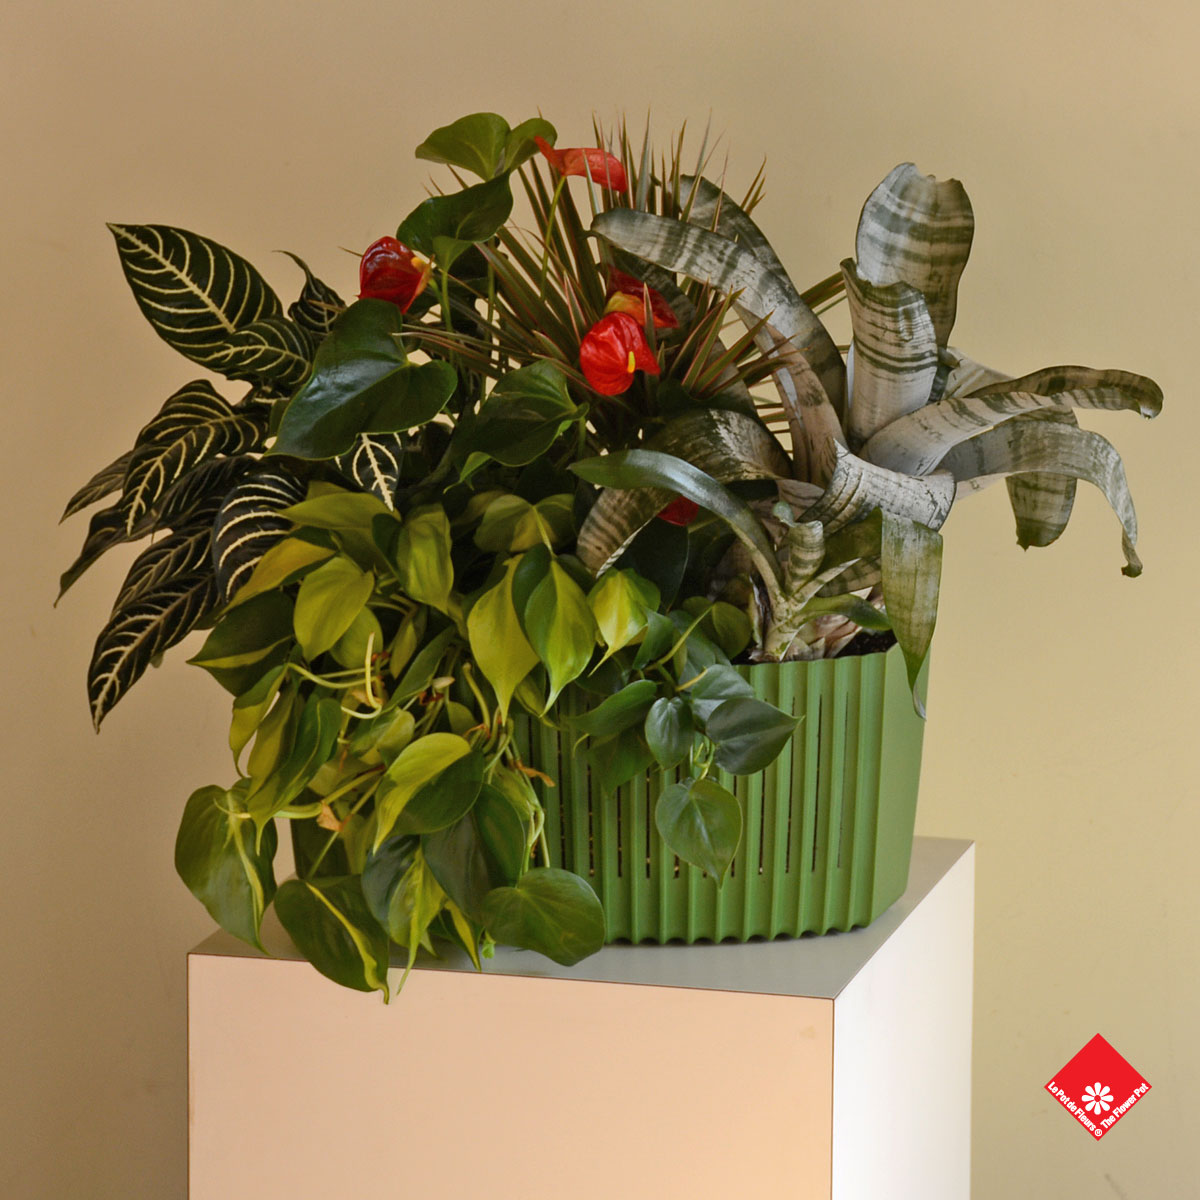 This planter can be hung on any wall with more planters like it to make a living wall in Montreal.